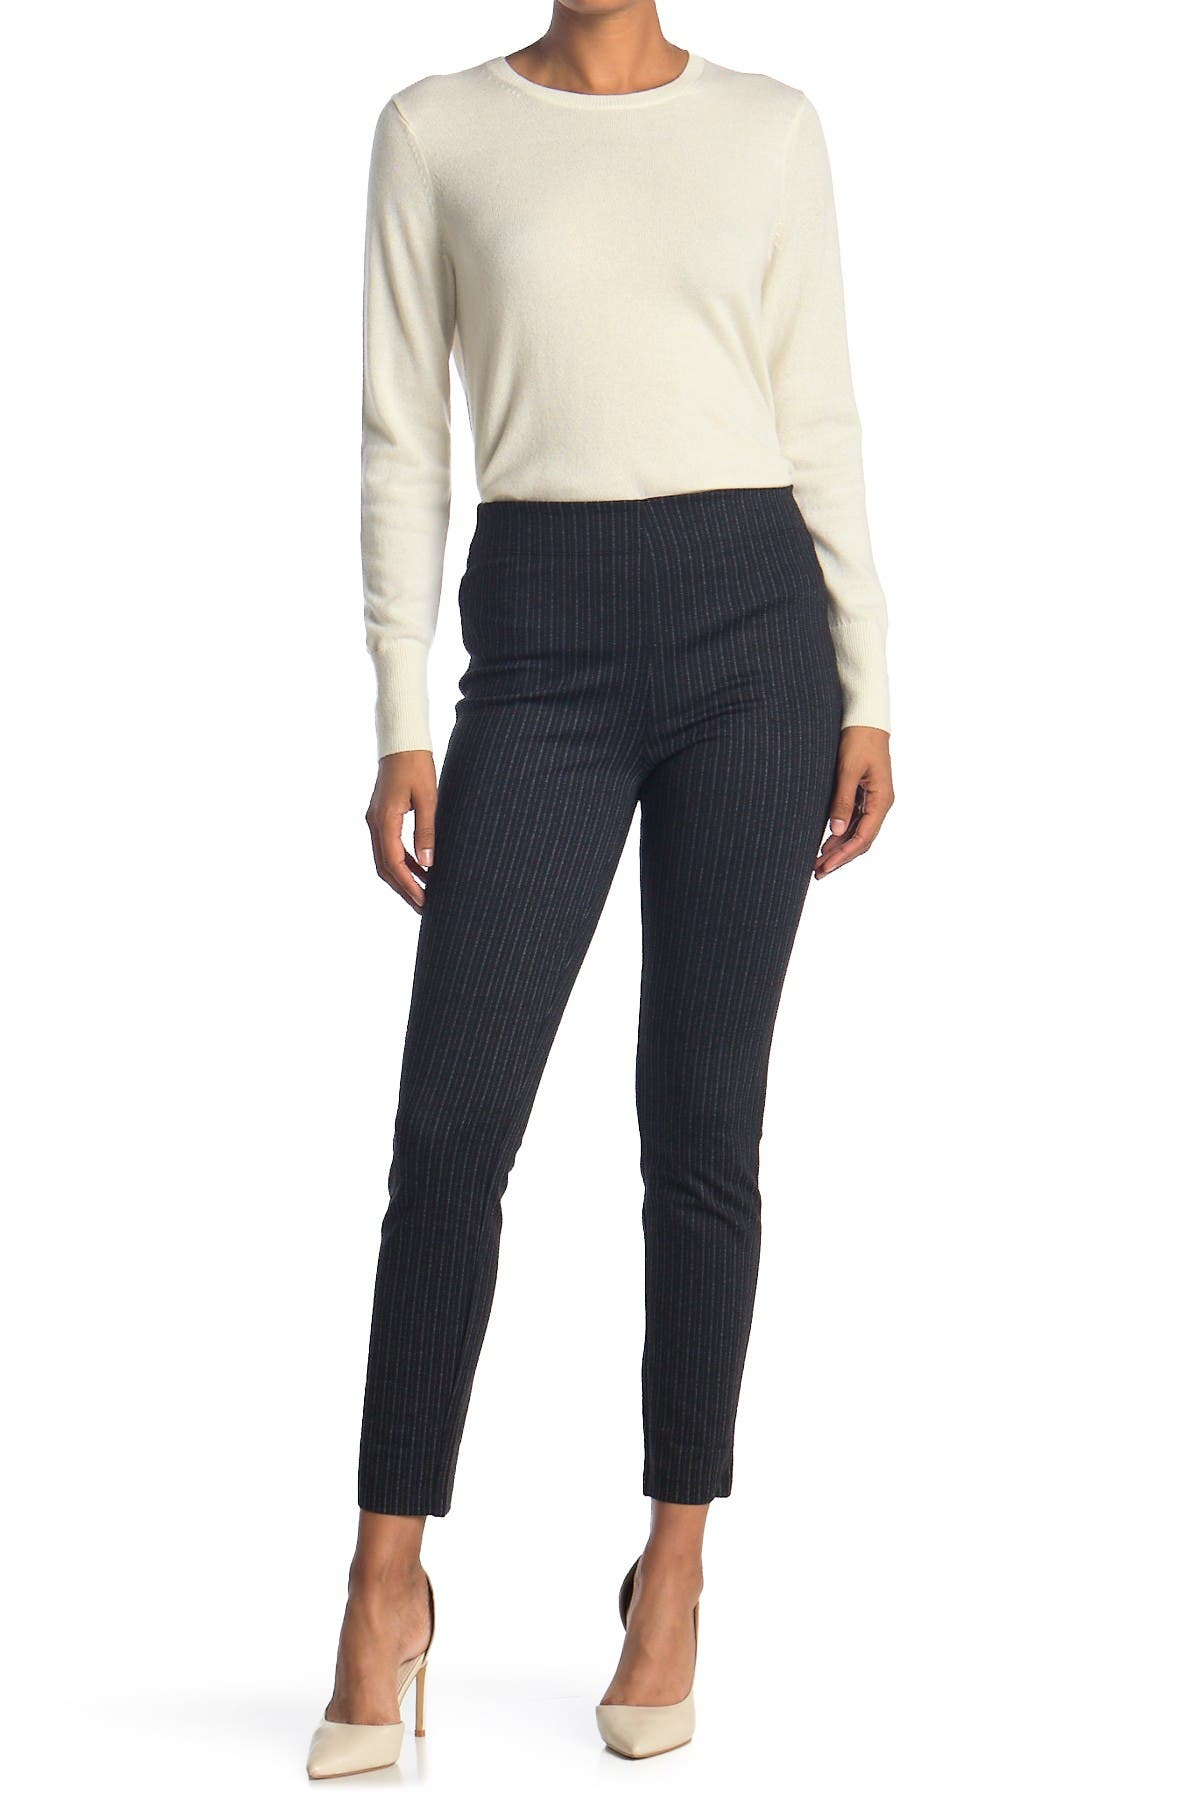 Image of Max Studio Pinstripe High Waisted Ankle Crop Leggings